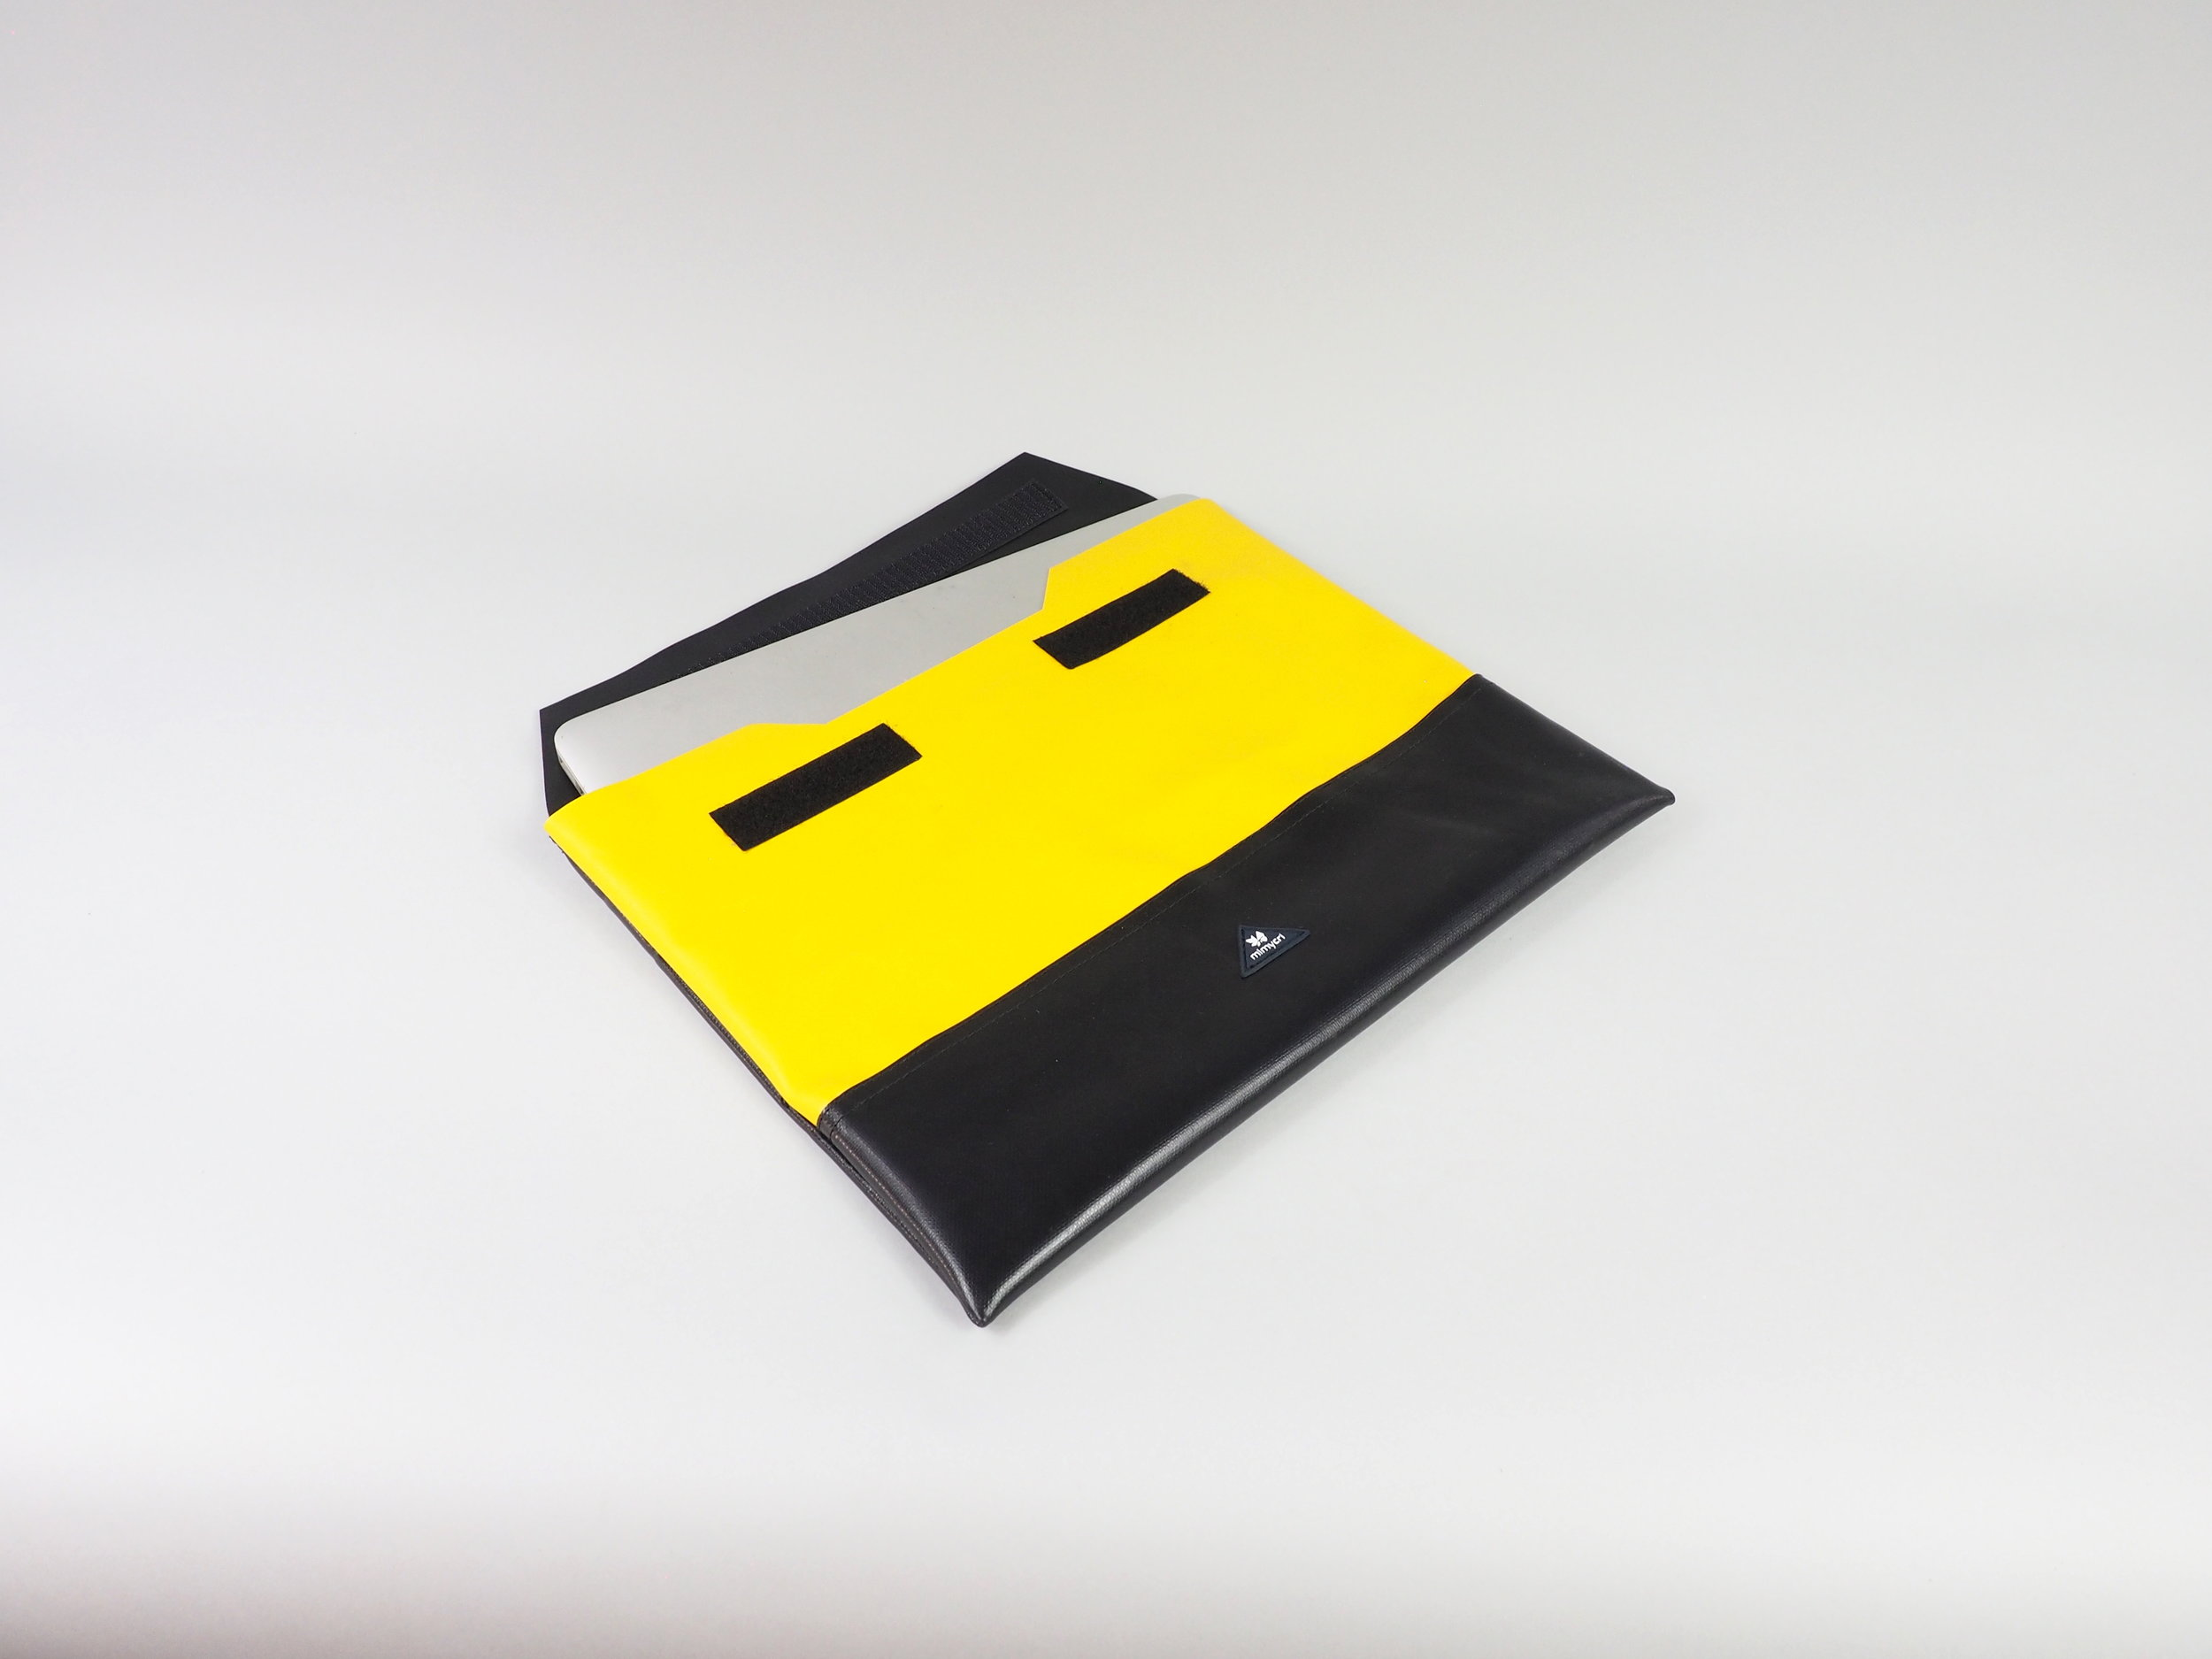 laptop case black yellow liegend.JPG